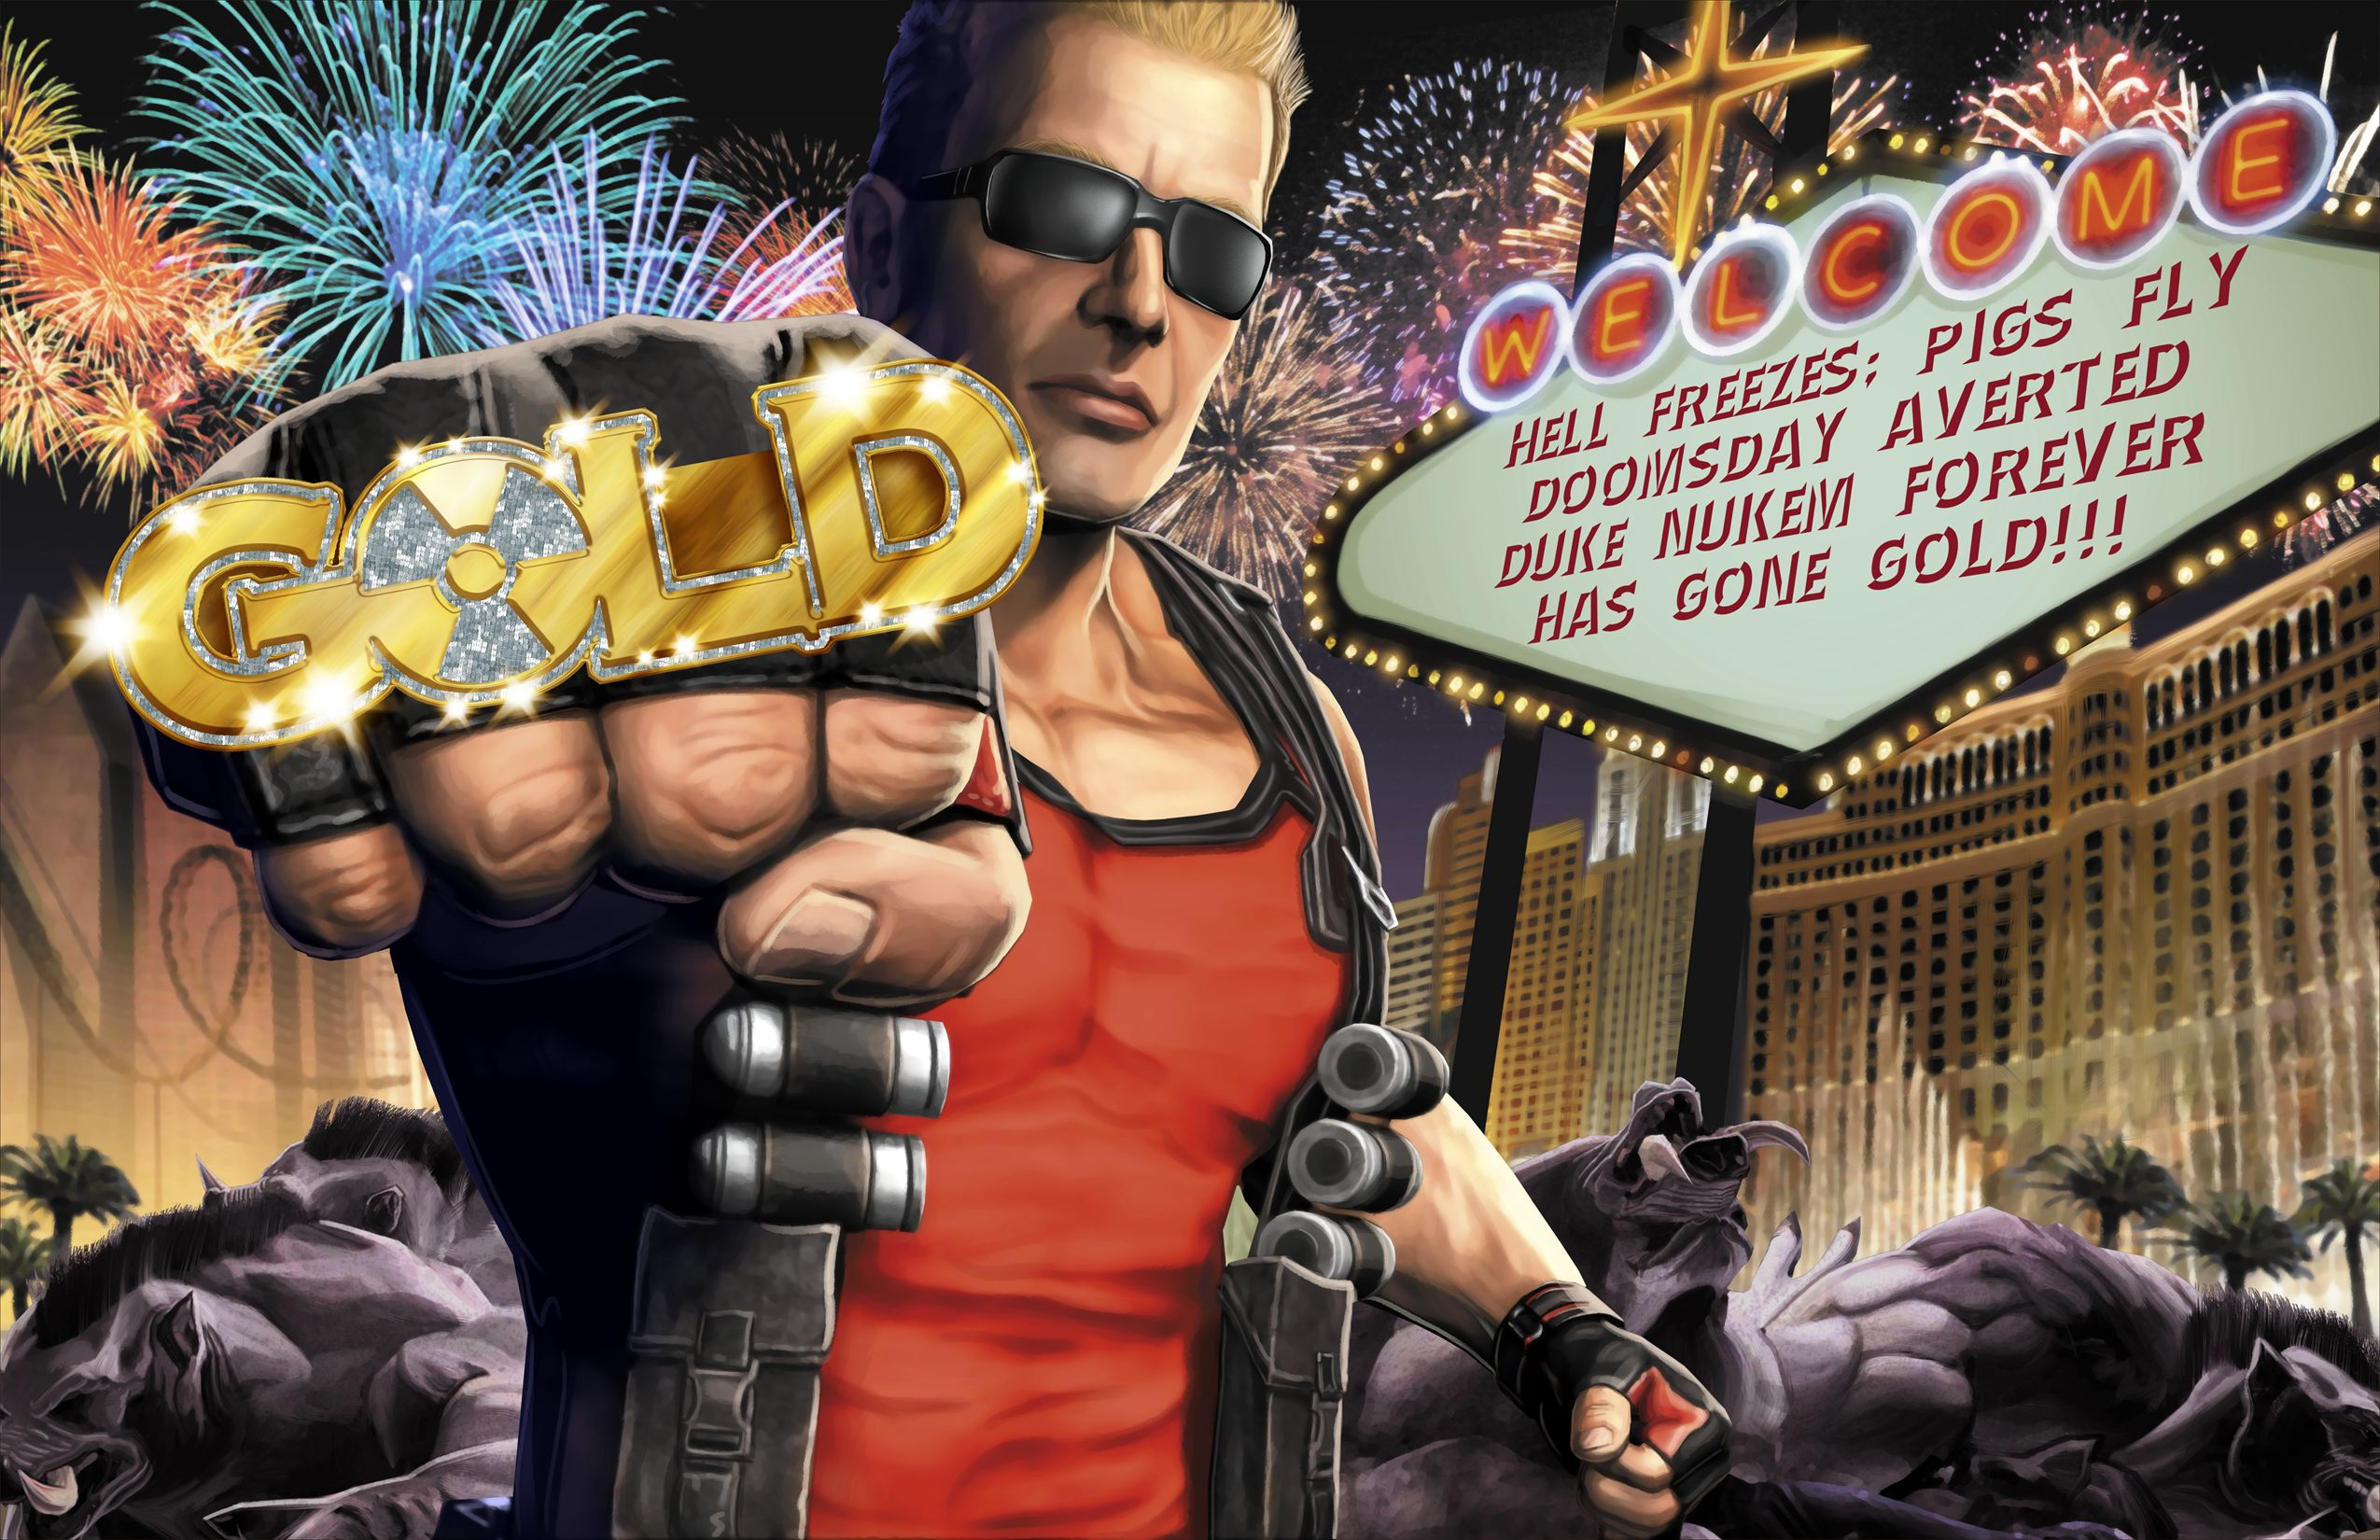 Duke Nukem Forever Has Gone Gold!